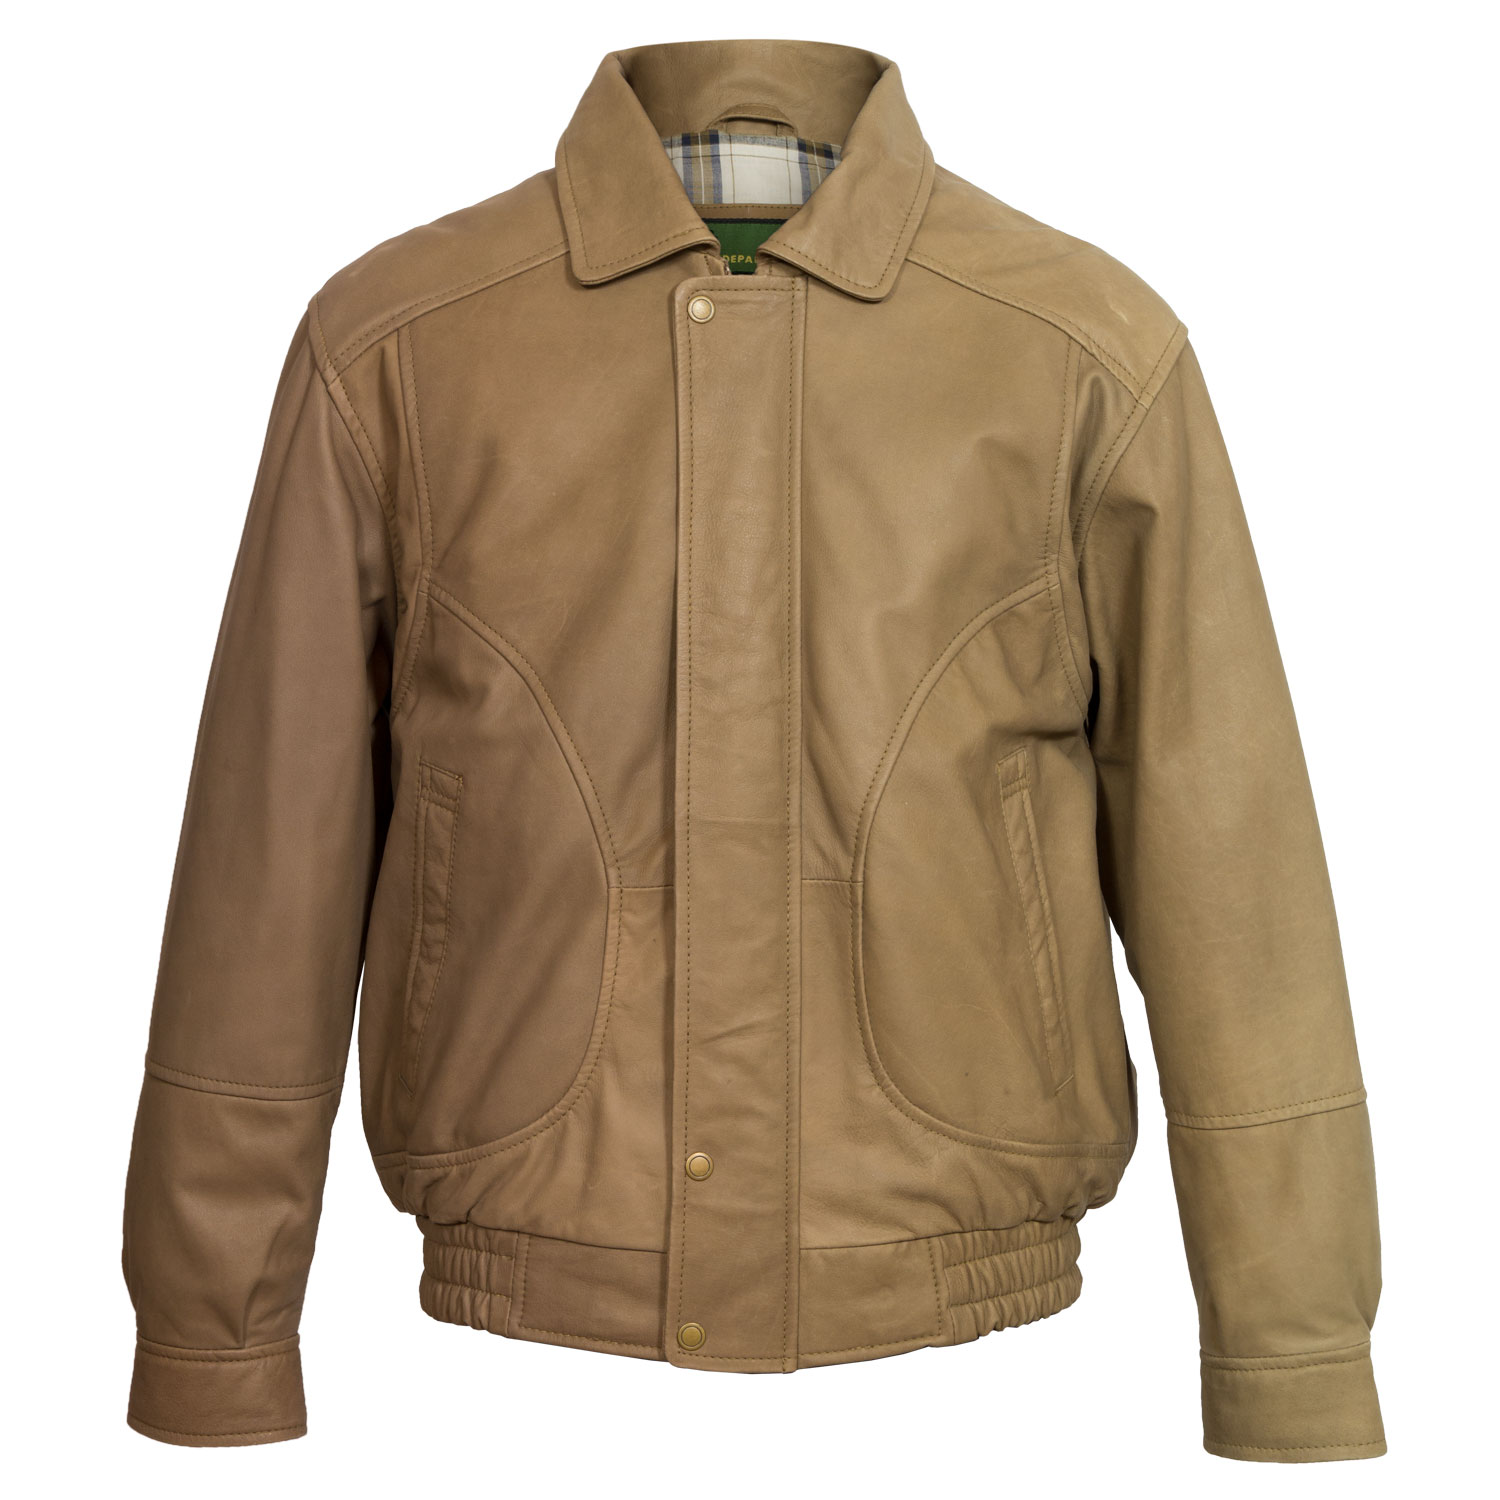 Men's Brown Leather Blouson Jacket